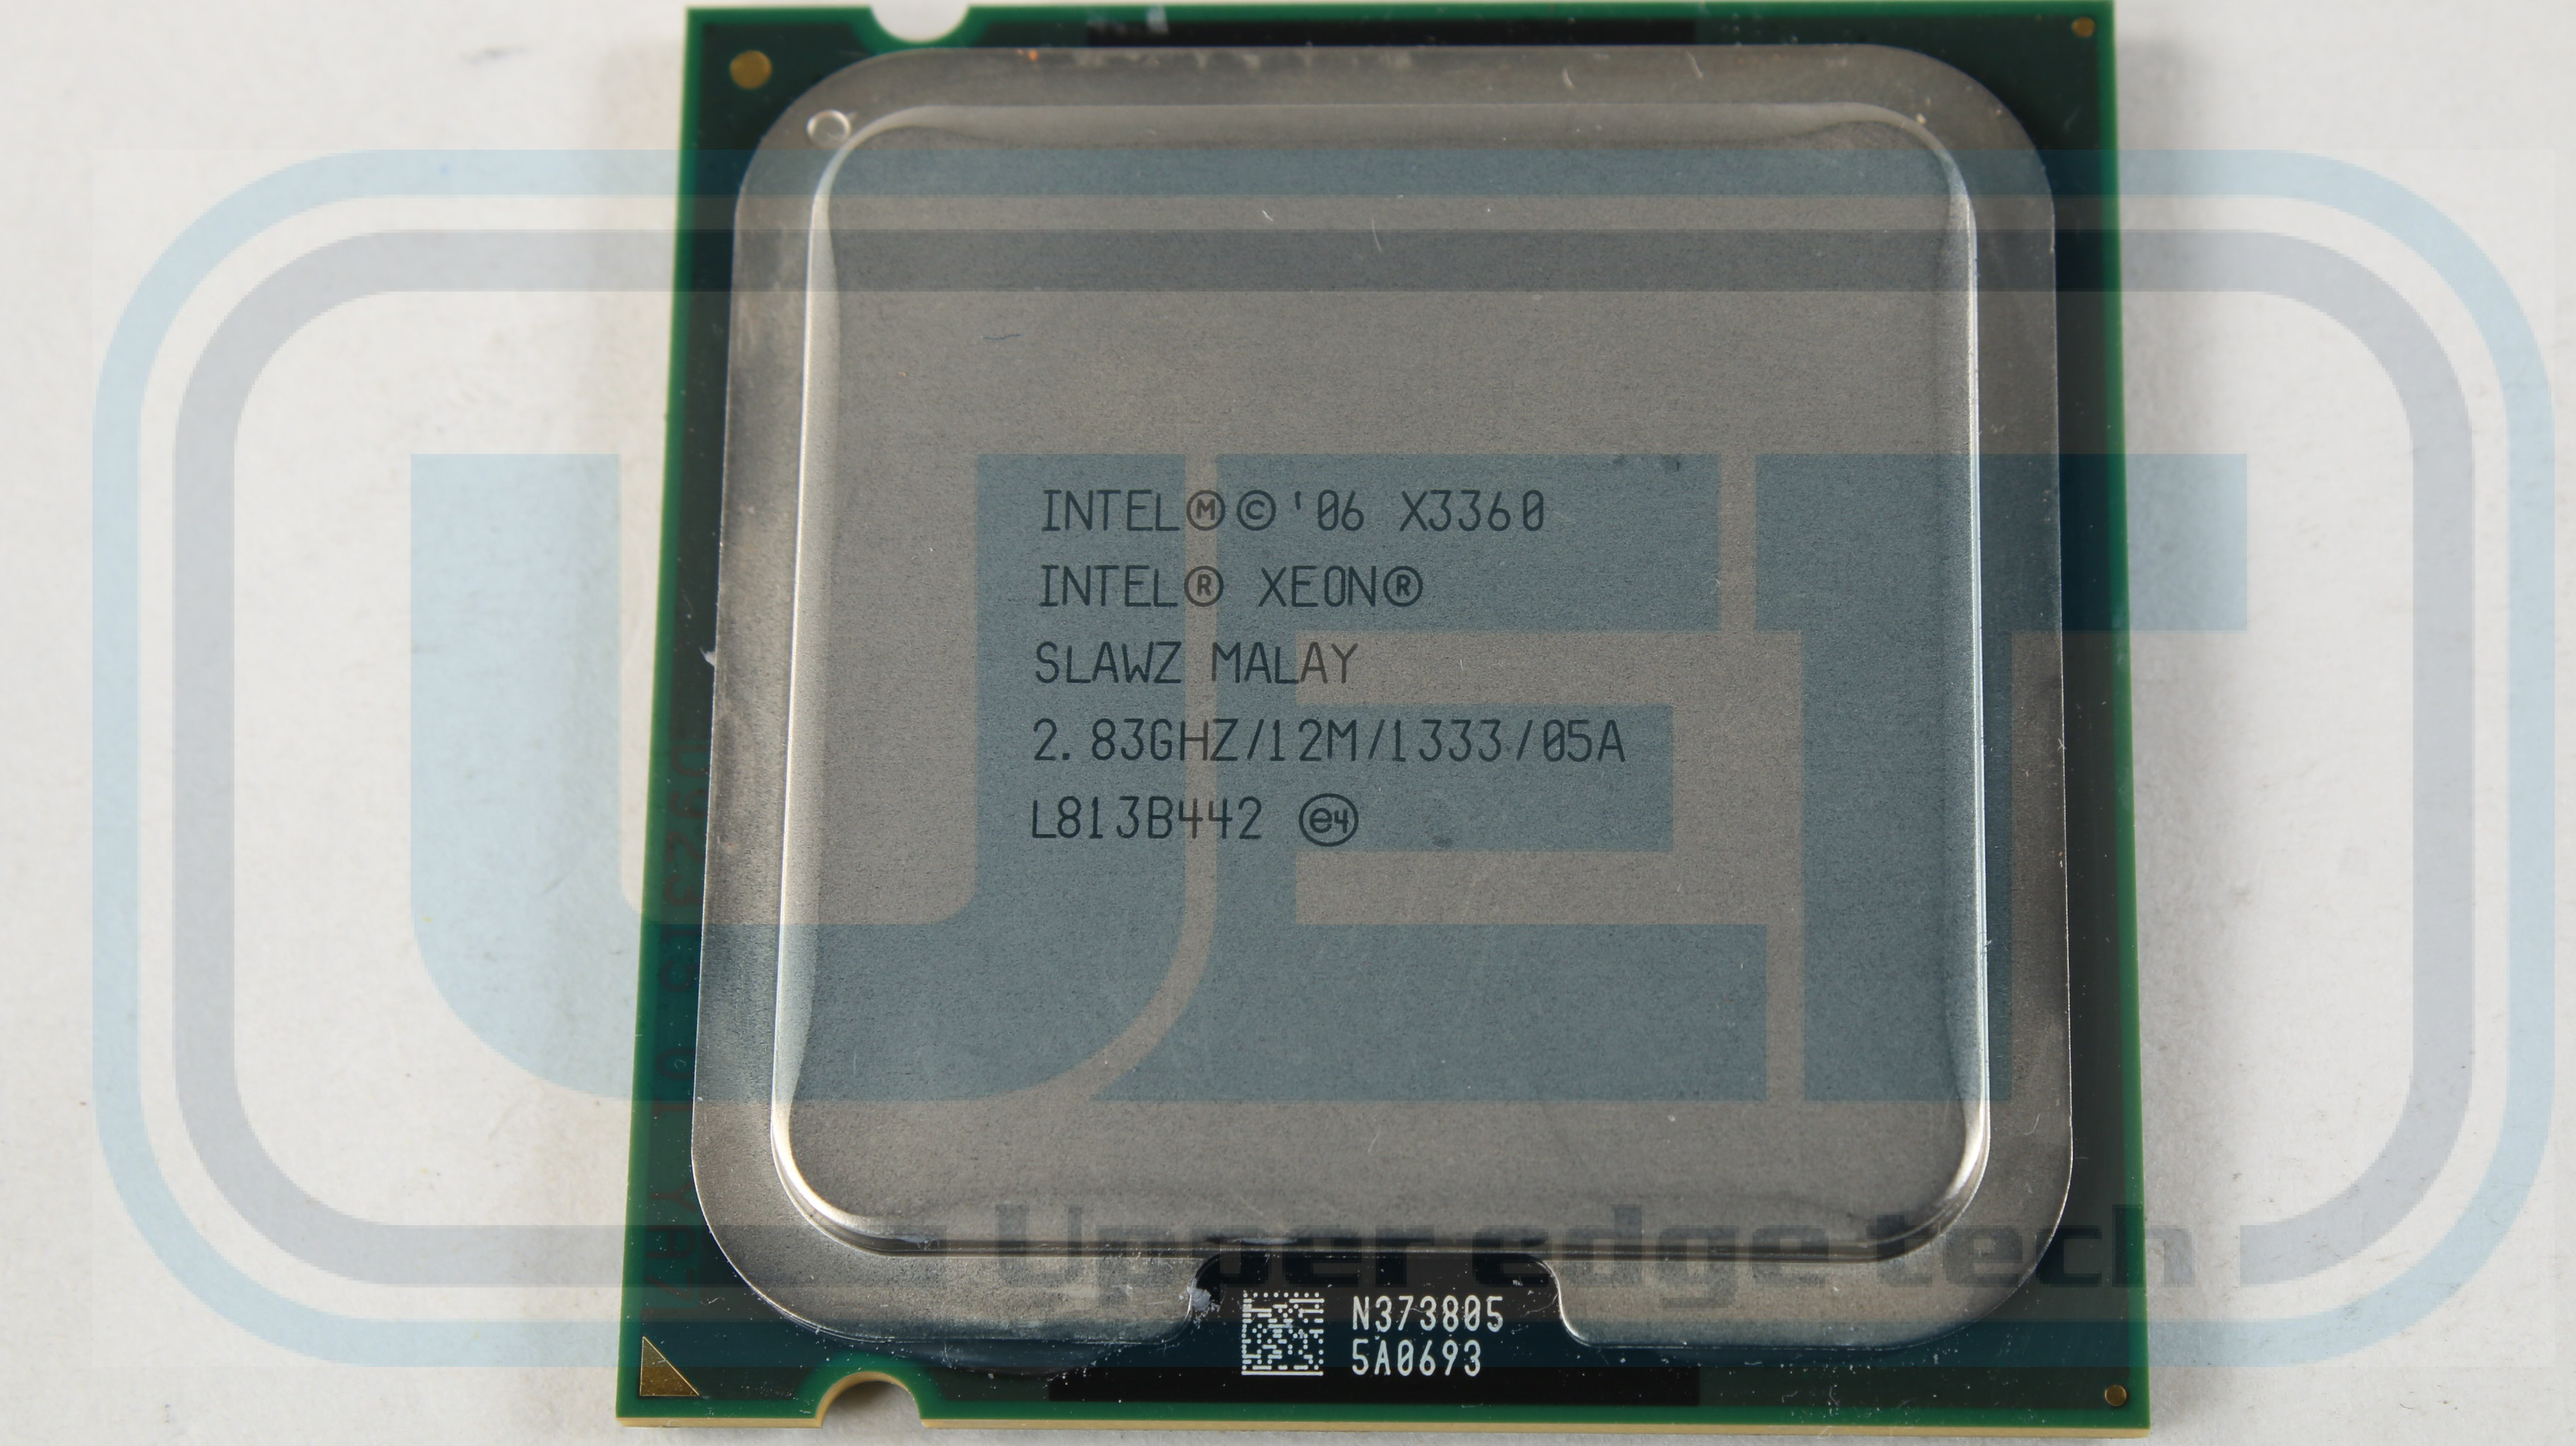 Intel Laptop Processor SLAWZ Xeon Xeon X3360 2.83GHz 1333MHz Tested Warranty